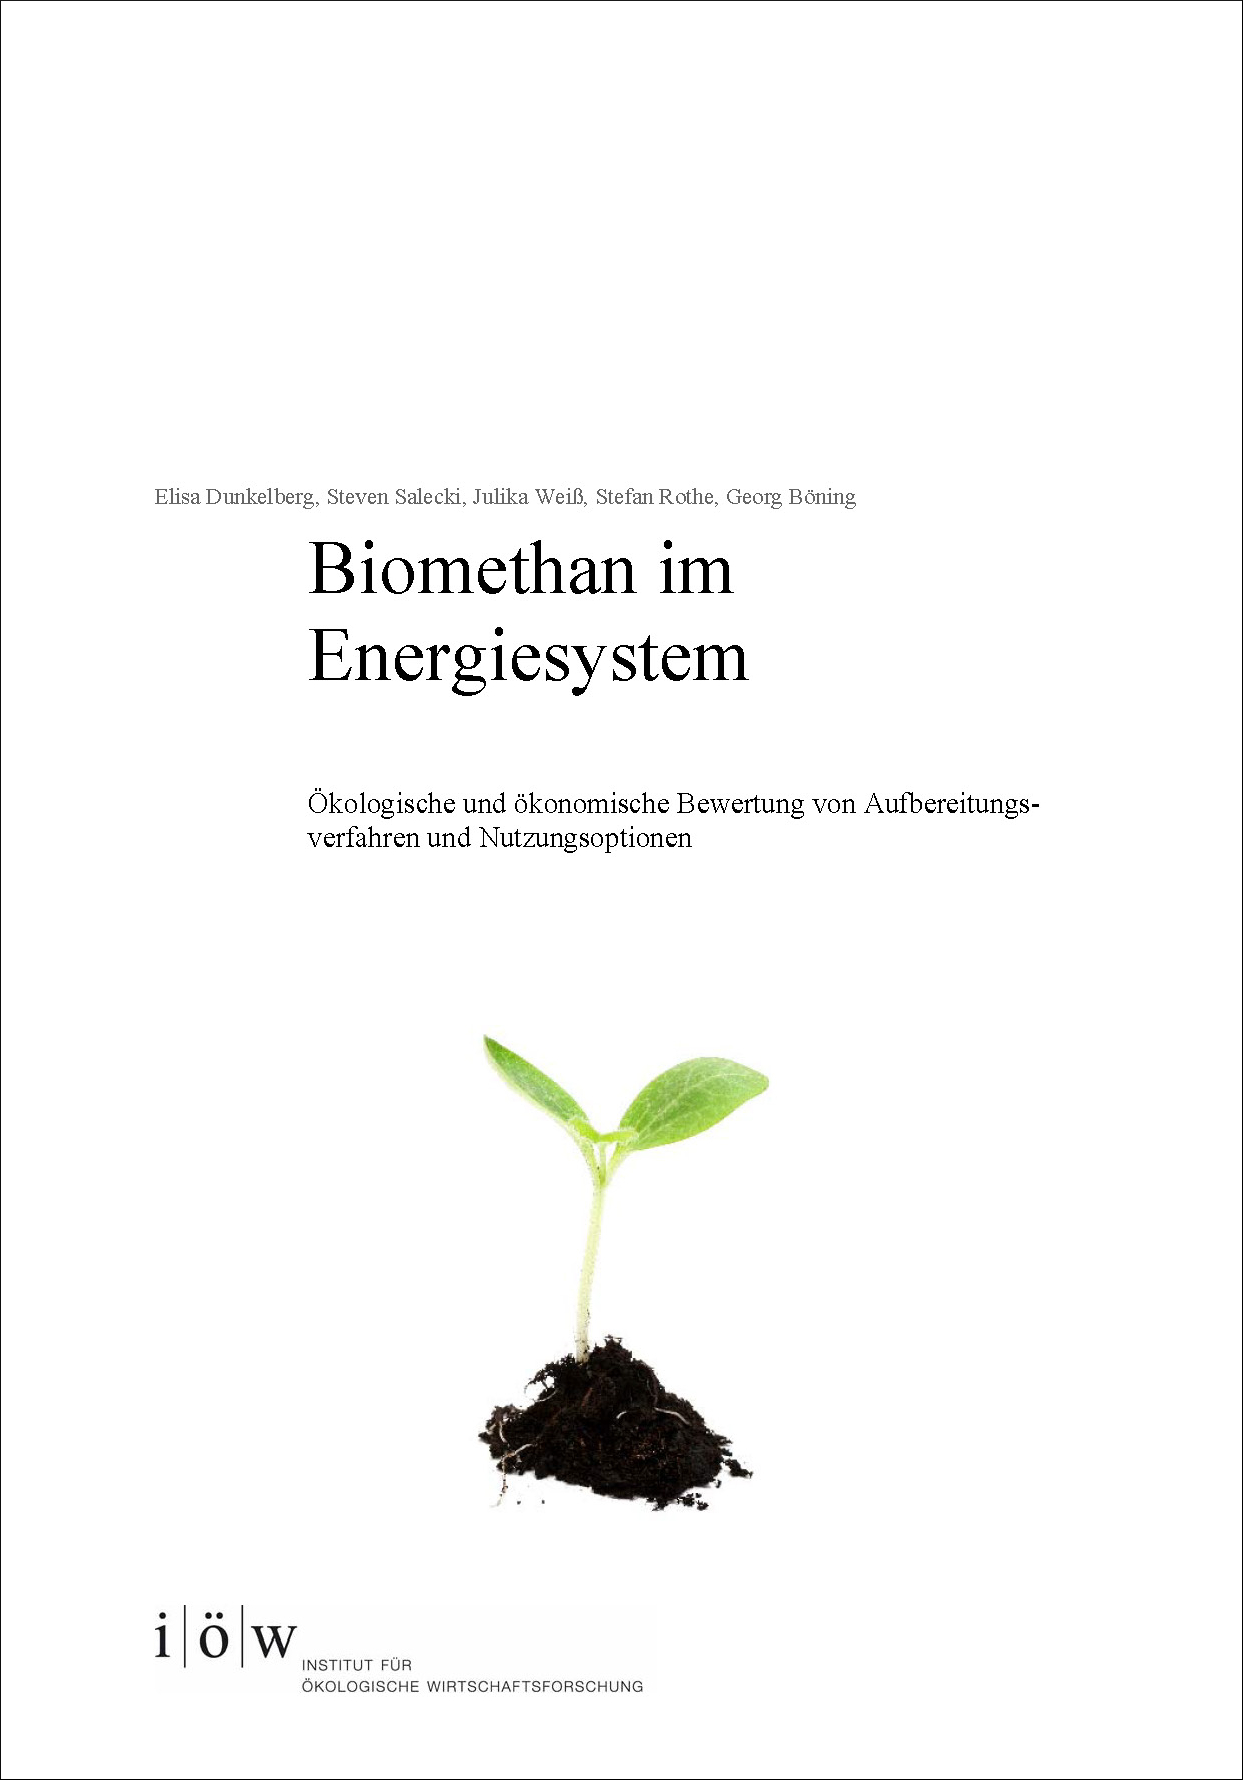 Biomethane in a sustainable energy system